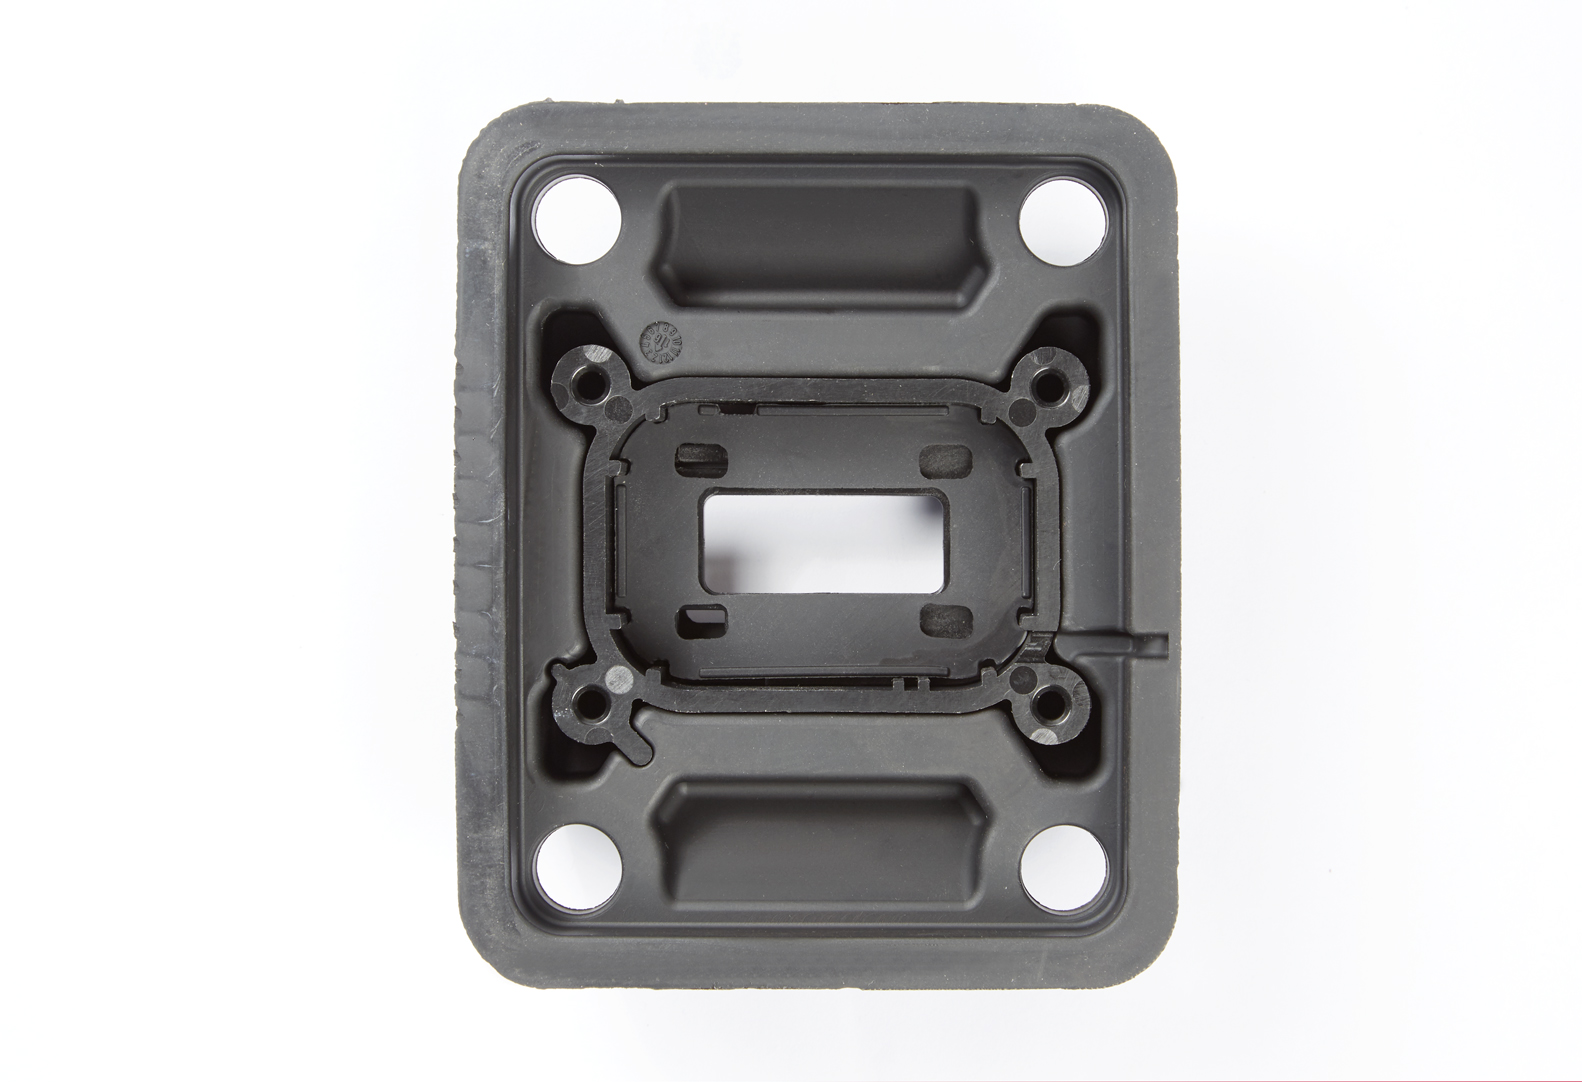 TOPCASE PRO - Housing for Hour Meter